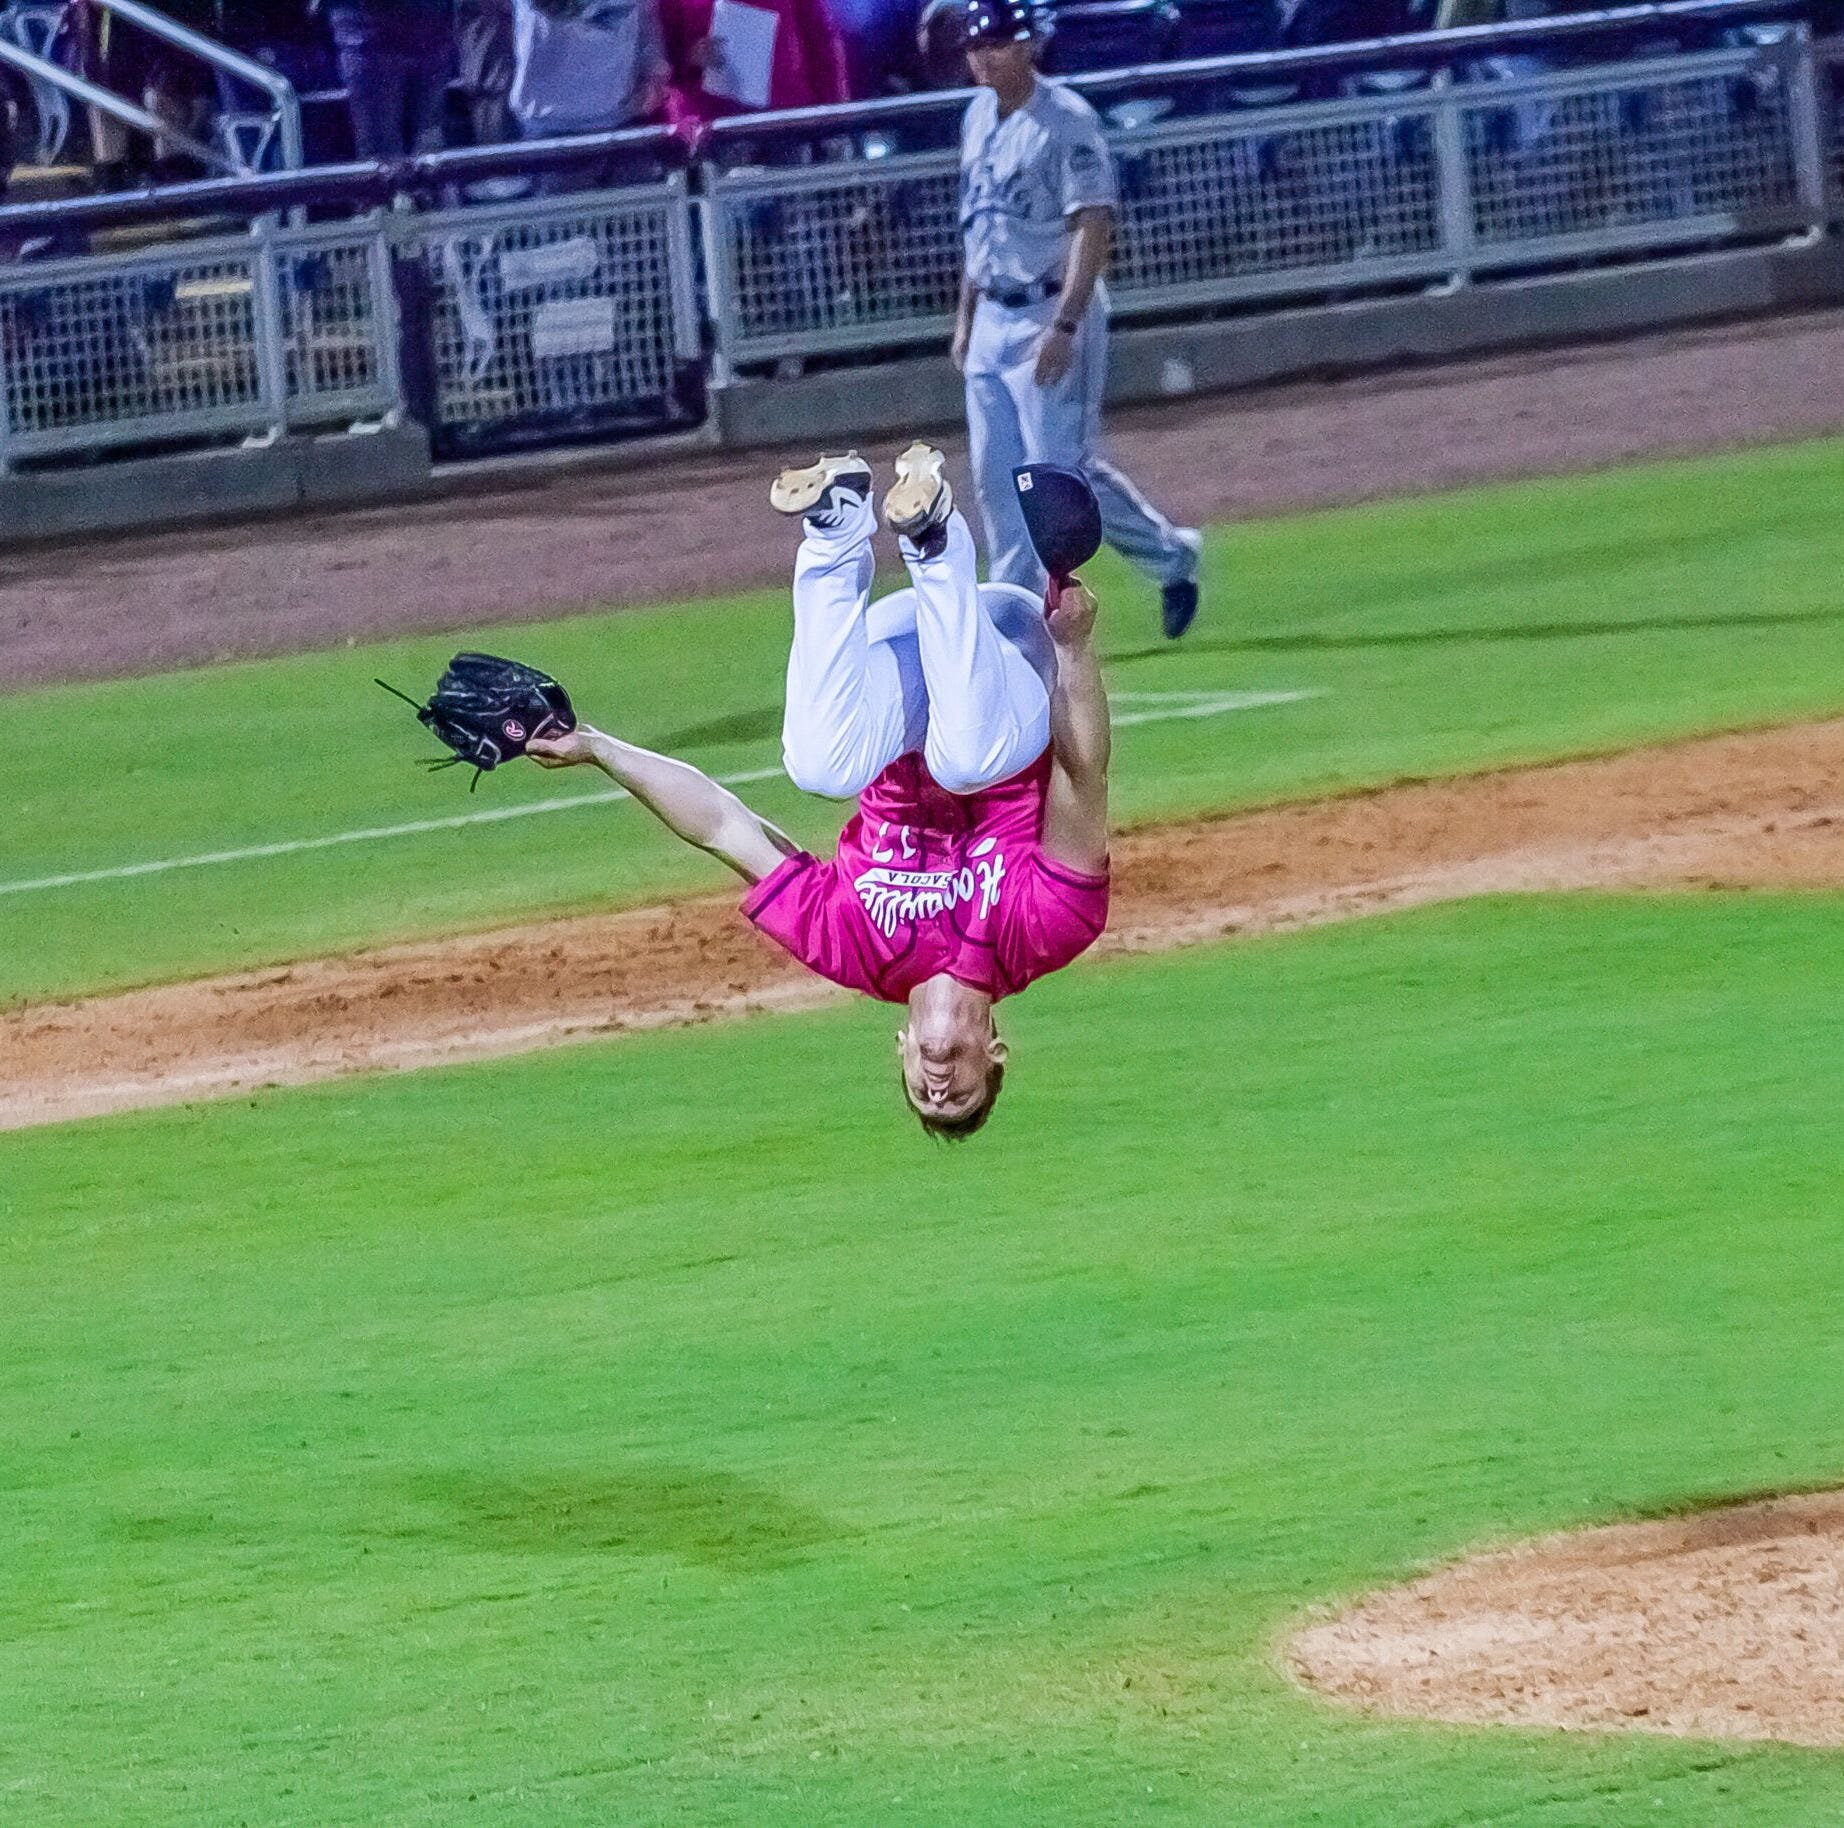 Wahoos pitcher Dusten Knight emulates Ozzie Smith with signature backflip finish